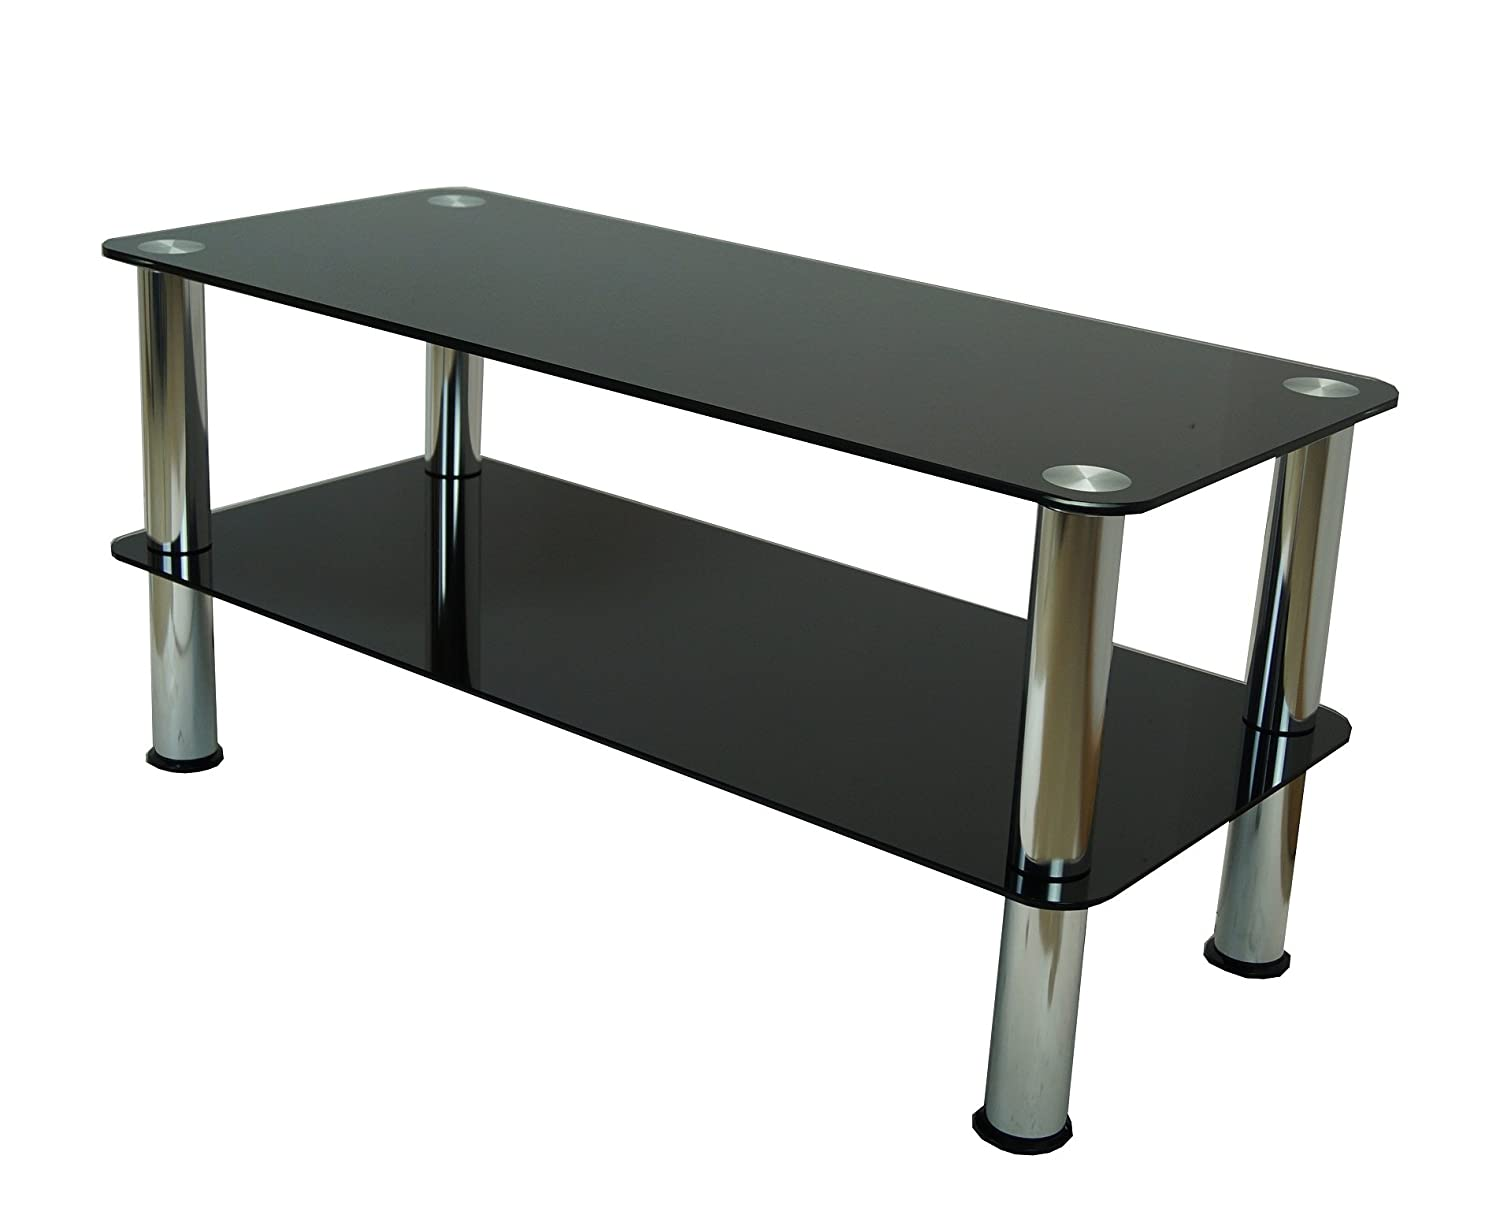 Mountright coffee table tv stand side table black glass mountright coffee table tv stand side table black glass silver leg amazon tv geotapseo Gallery